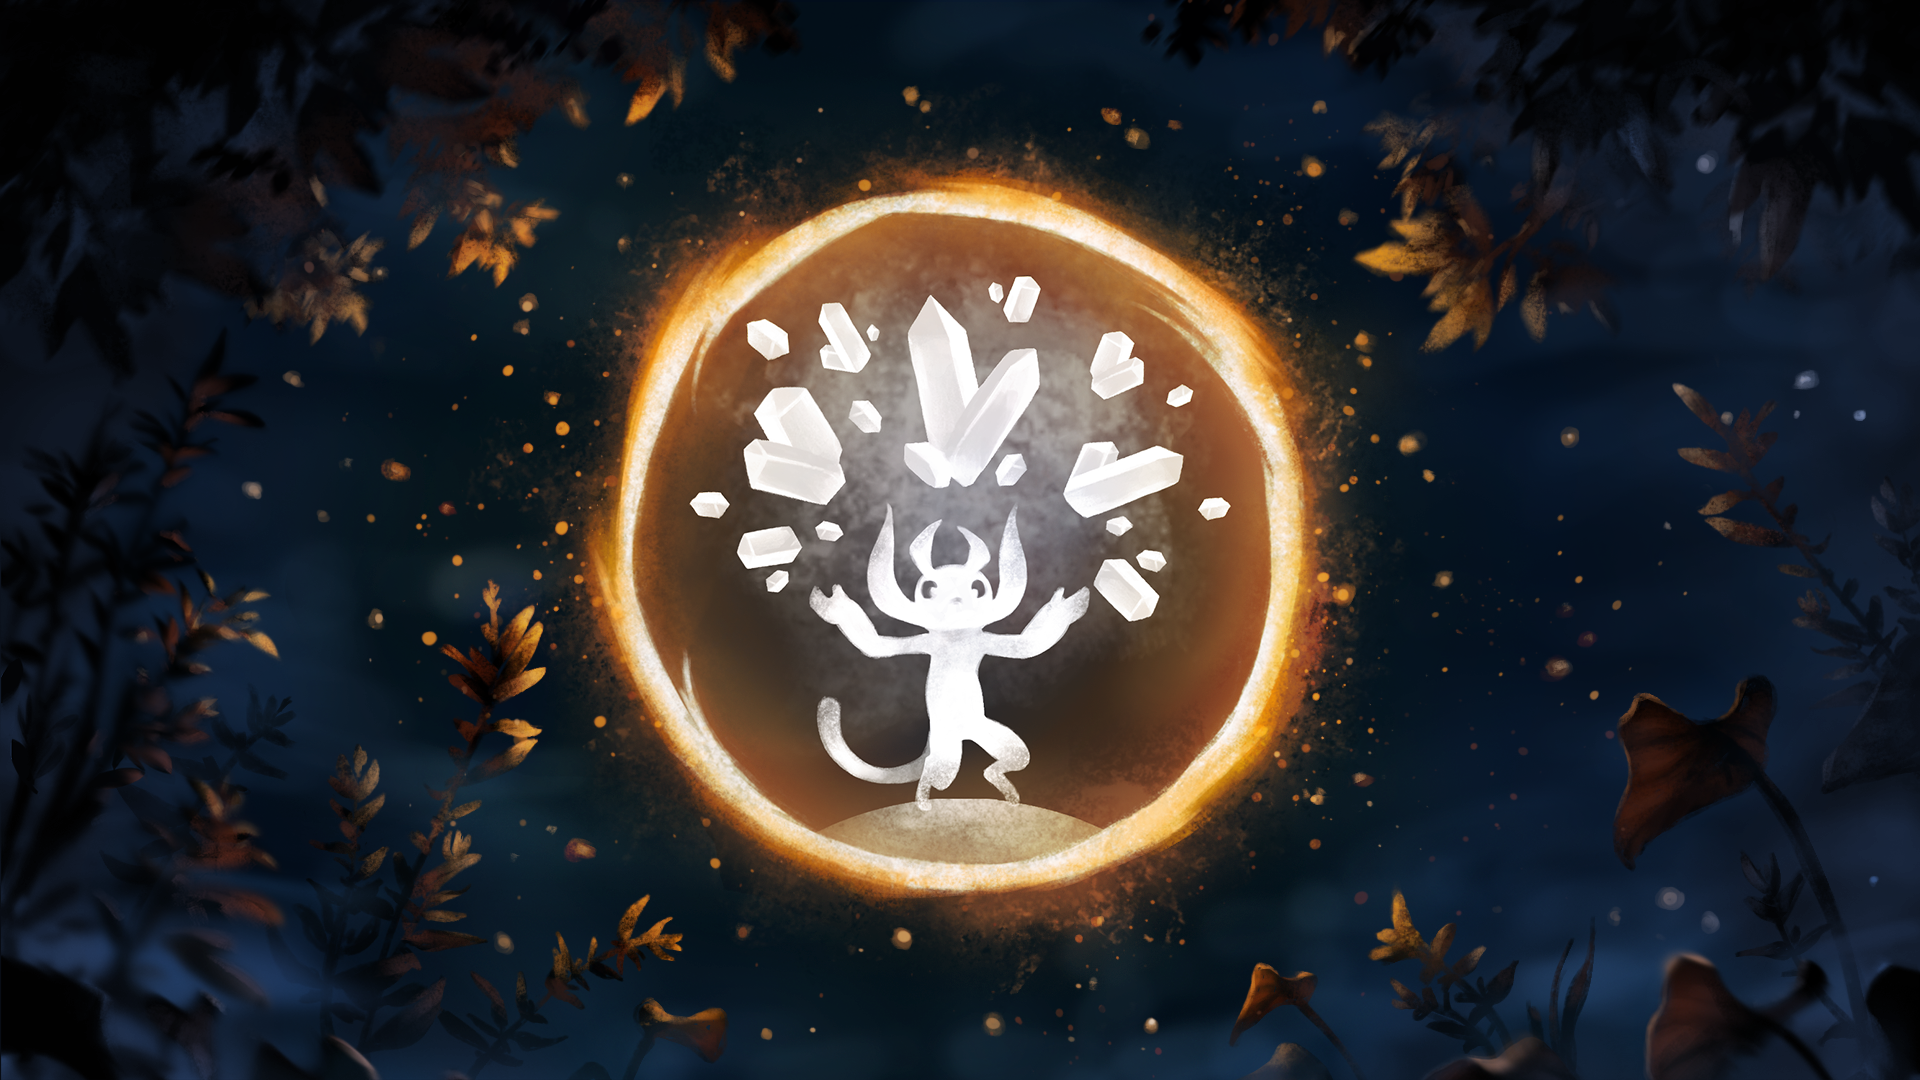 Power Player achievement for Ori and the Blind Forest on Nintendo Switch